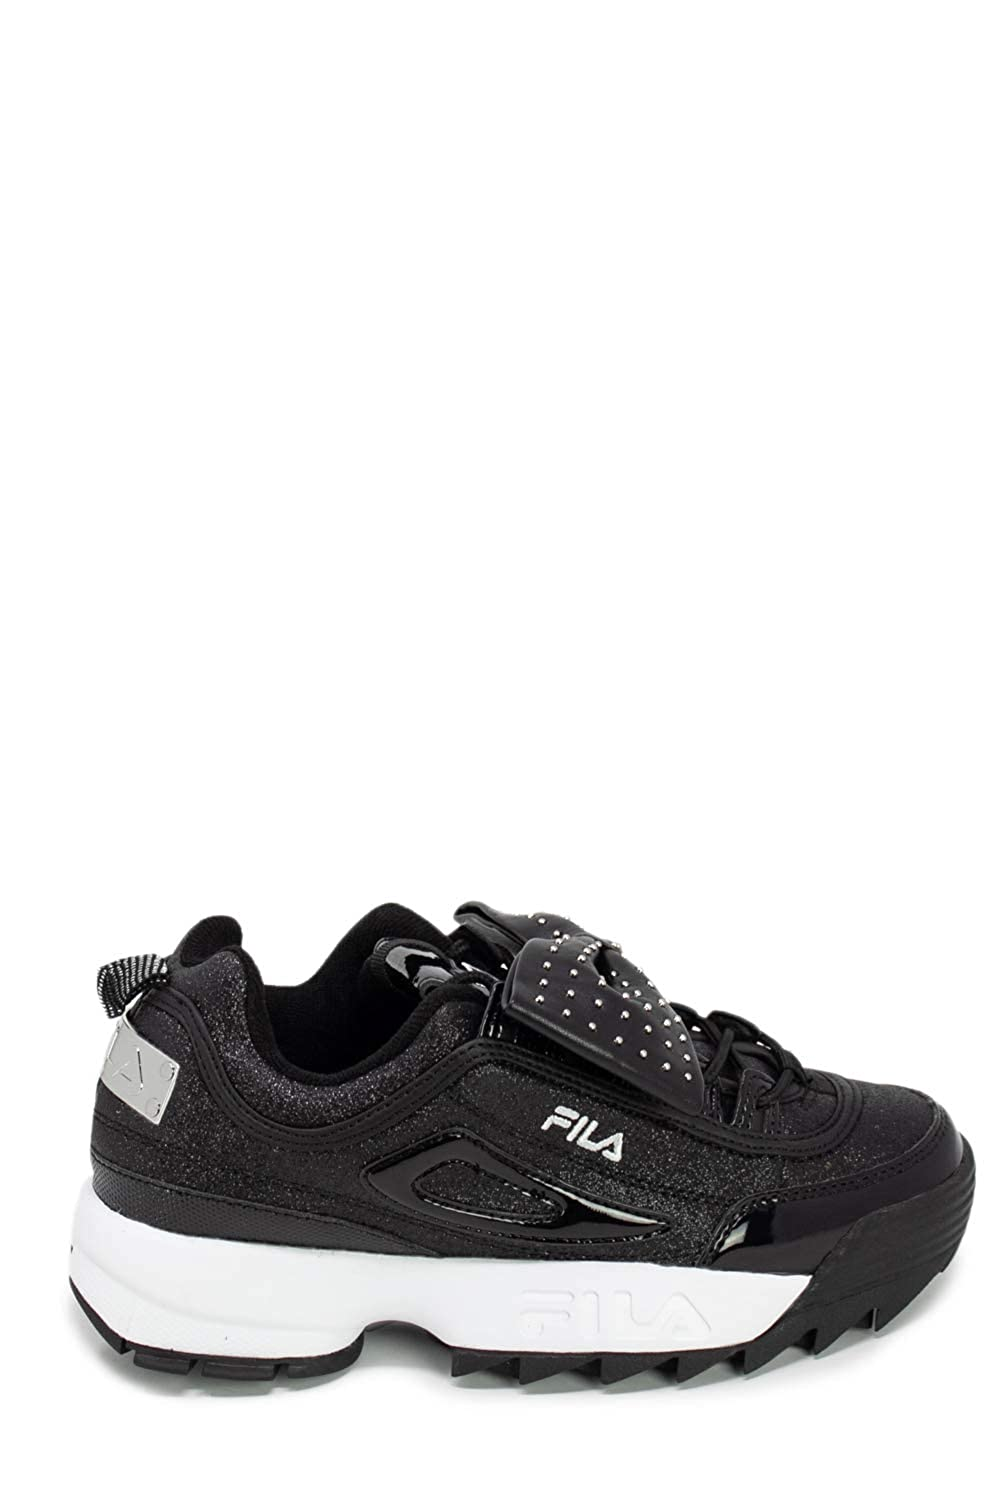 Fila Baskets Femme Disruptor Glam Low 1010537 25Y Black